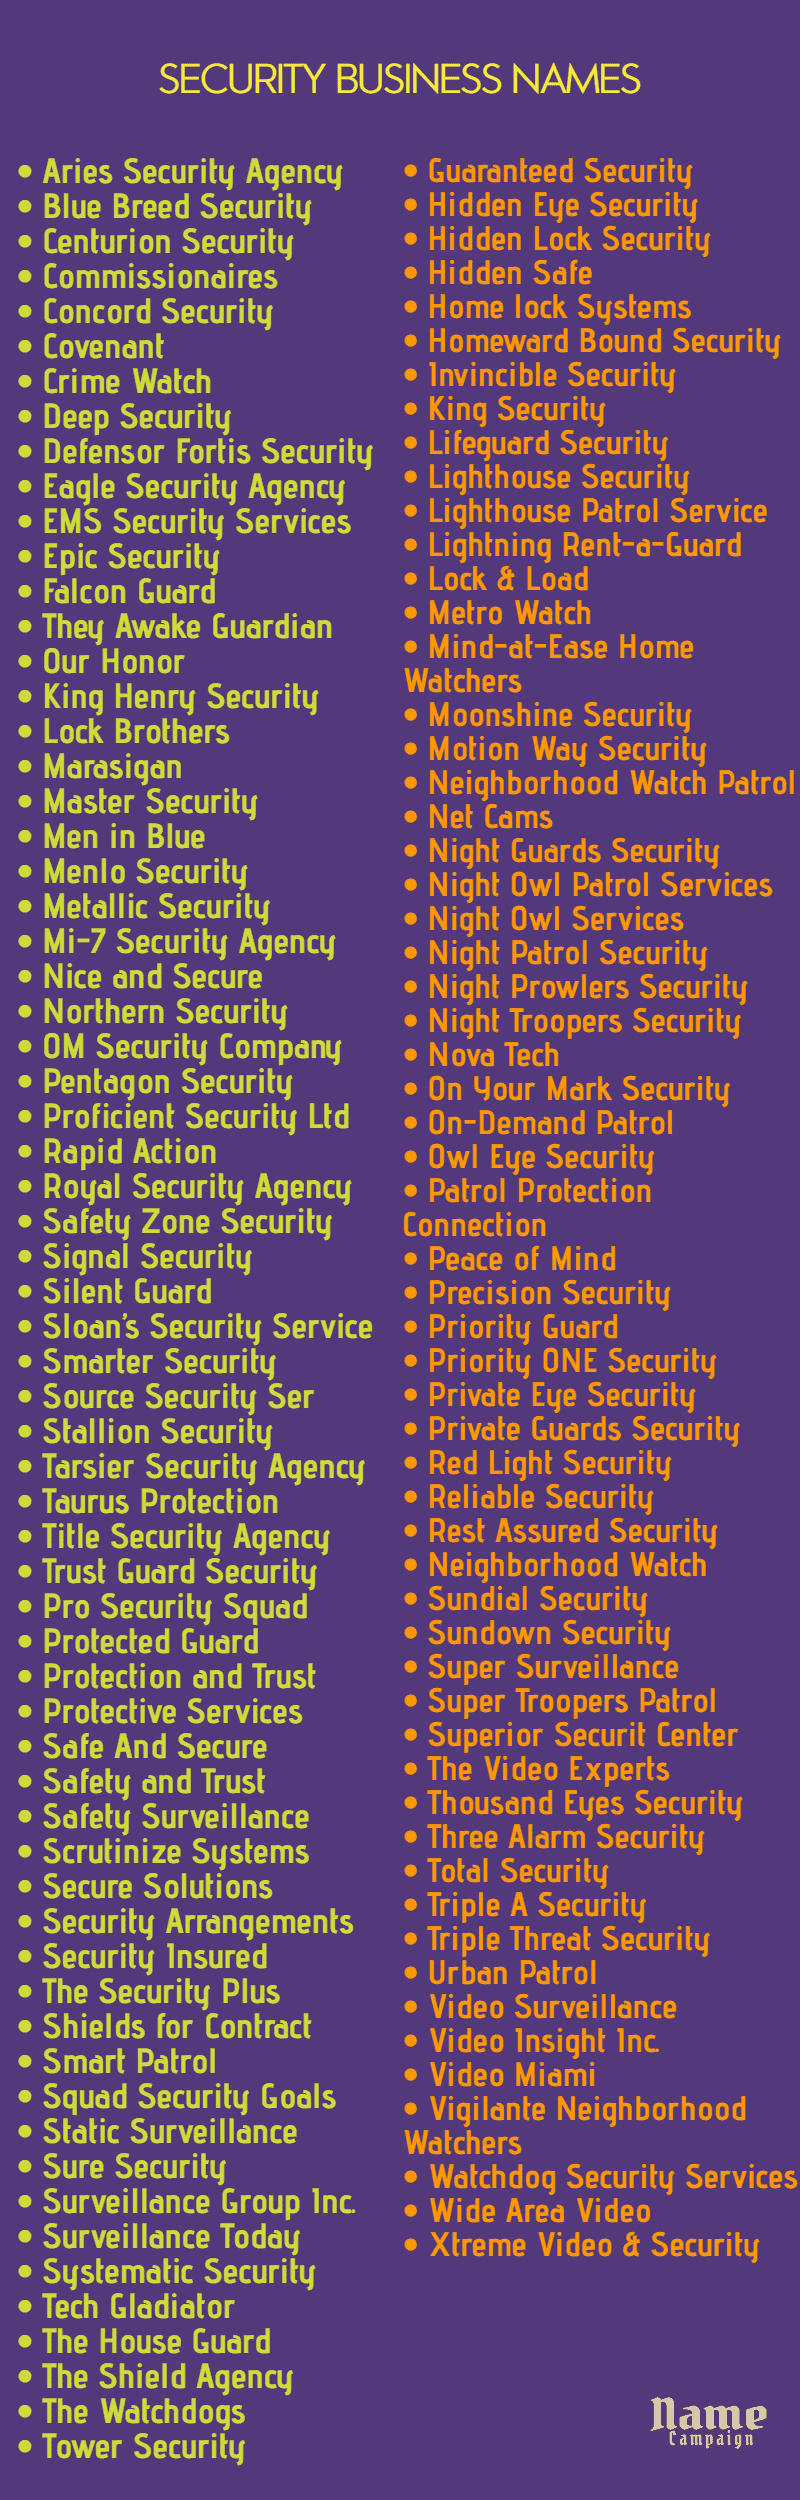 security names: security company names list